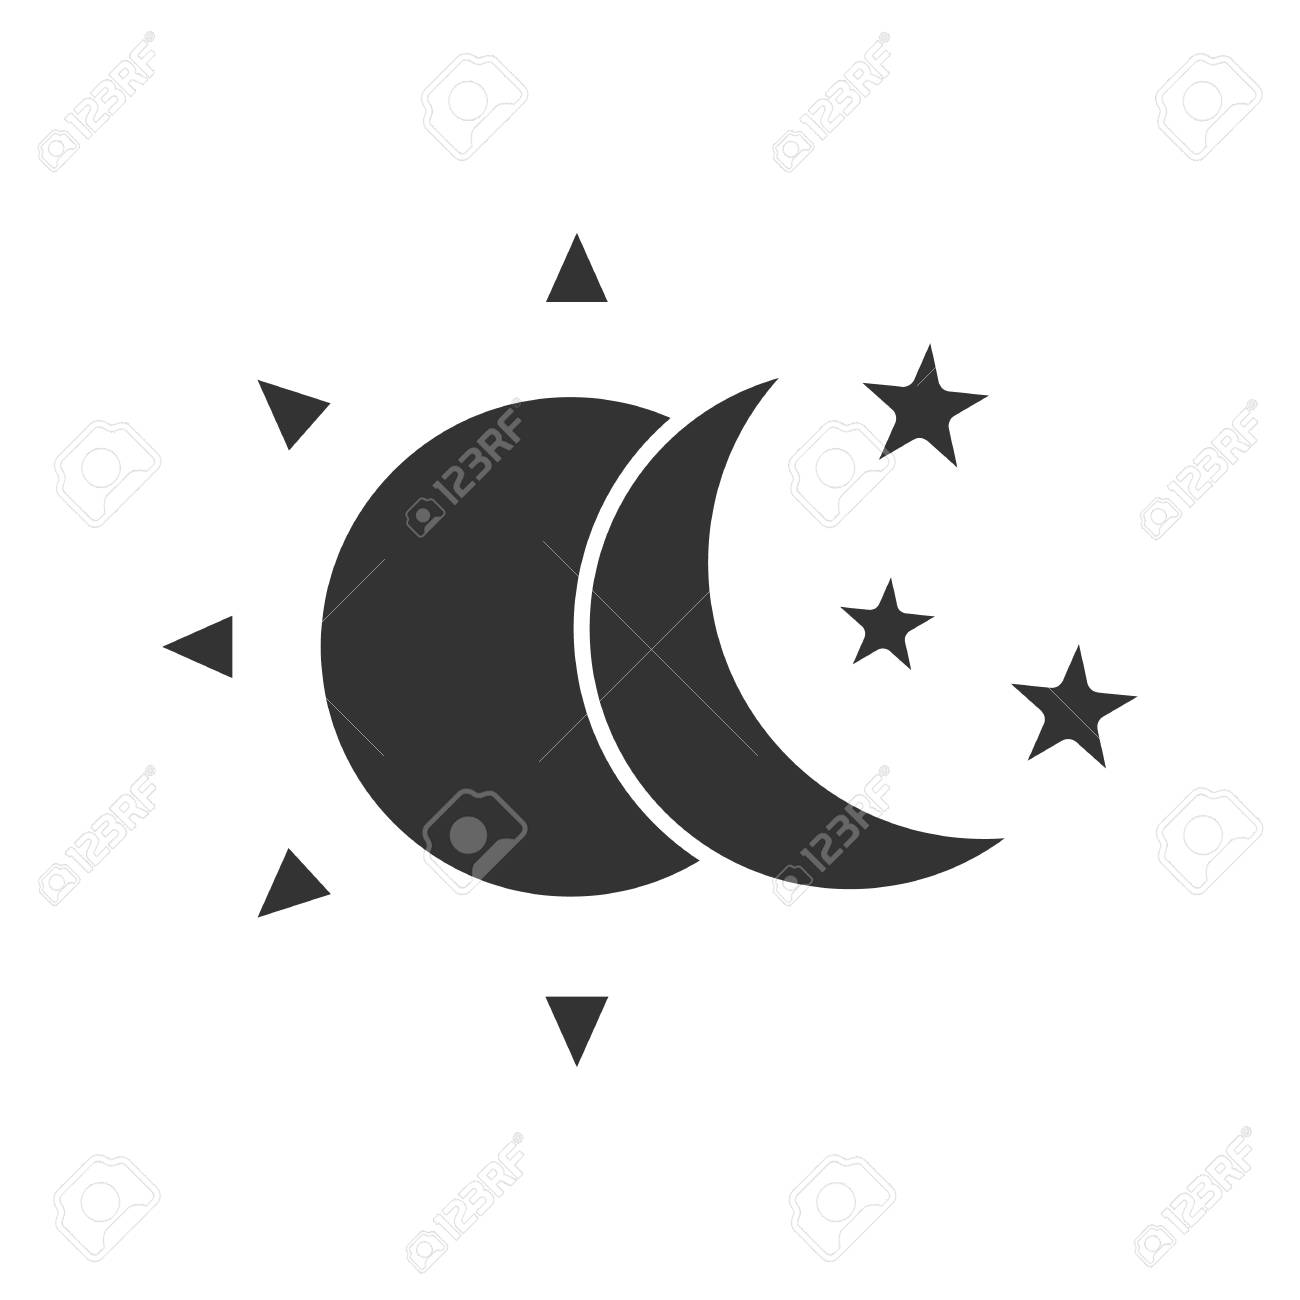 Sun and moon with stars glyph icon royalty free cliparts vectors sun and moon with stars glyph icon stock vector 87945688 biocorpaavc Images